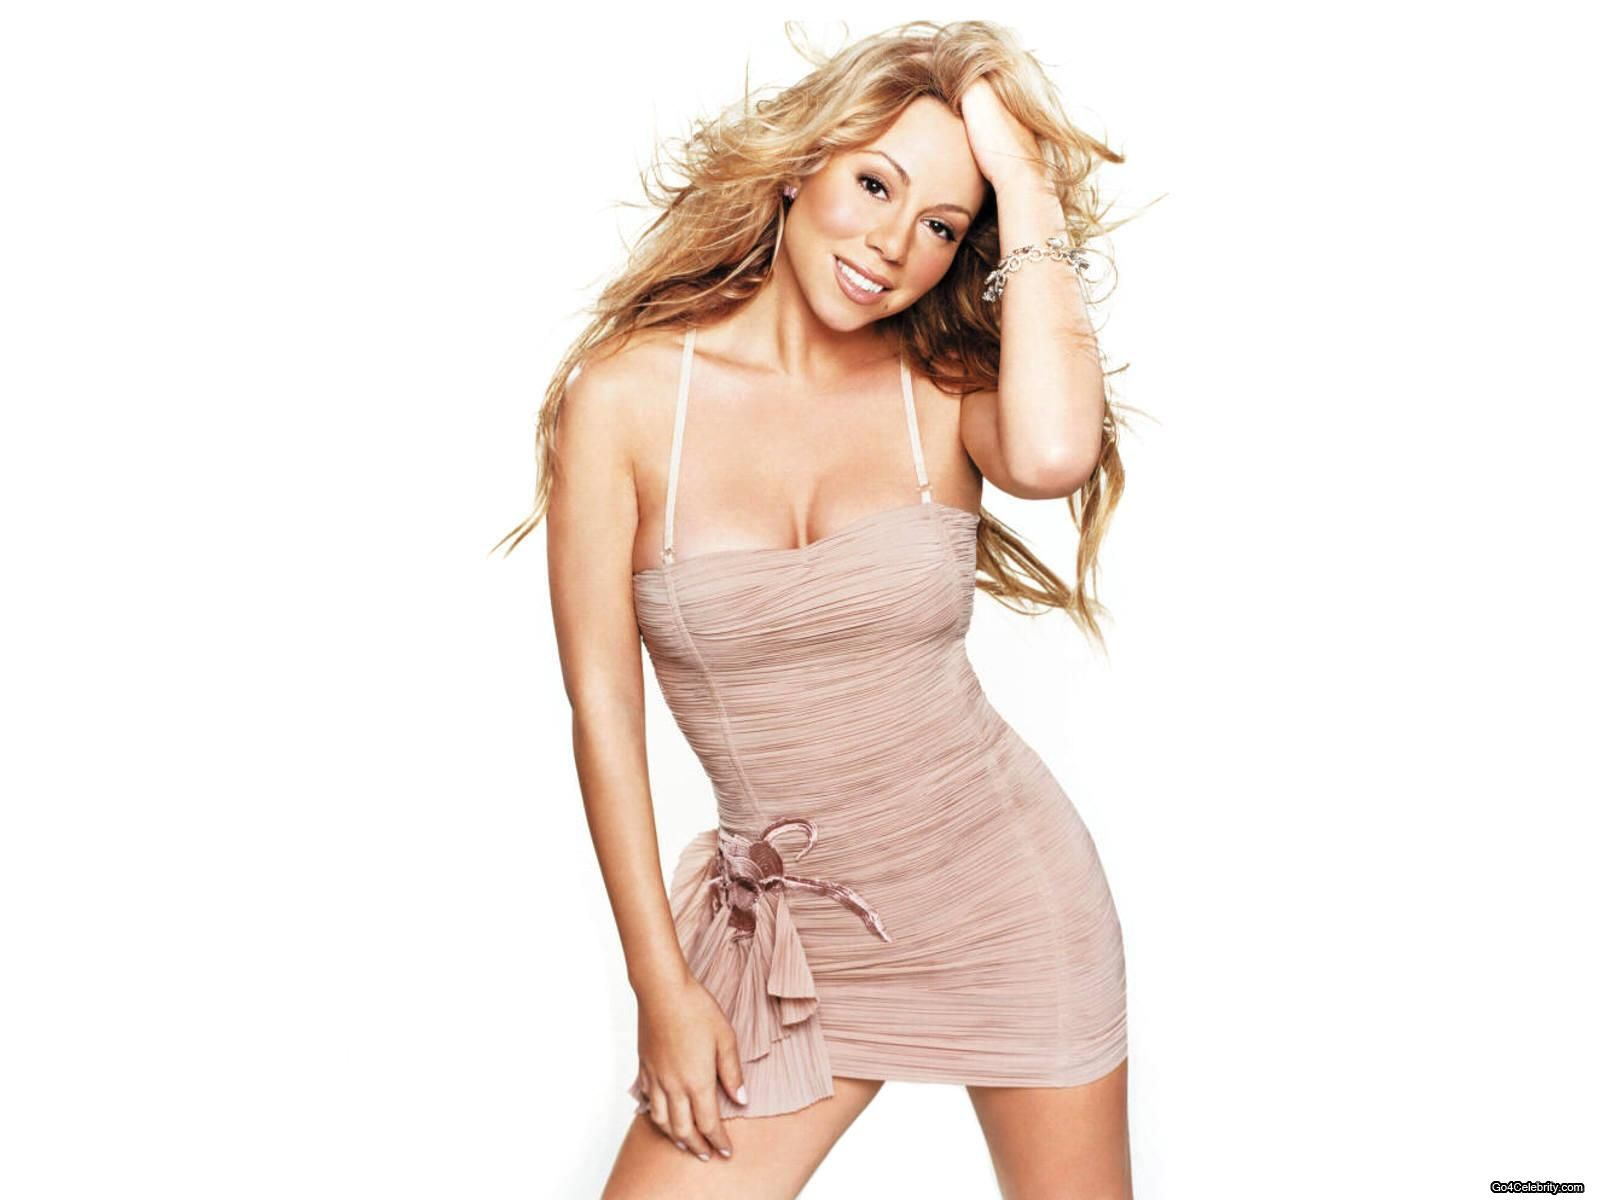 MB Wallpapers Provides You The Latest Mariah Carey Wallpaper We Update Collection Of